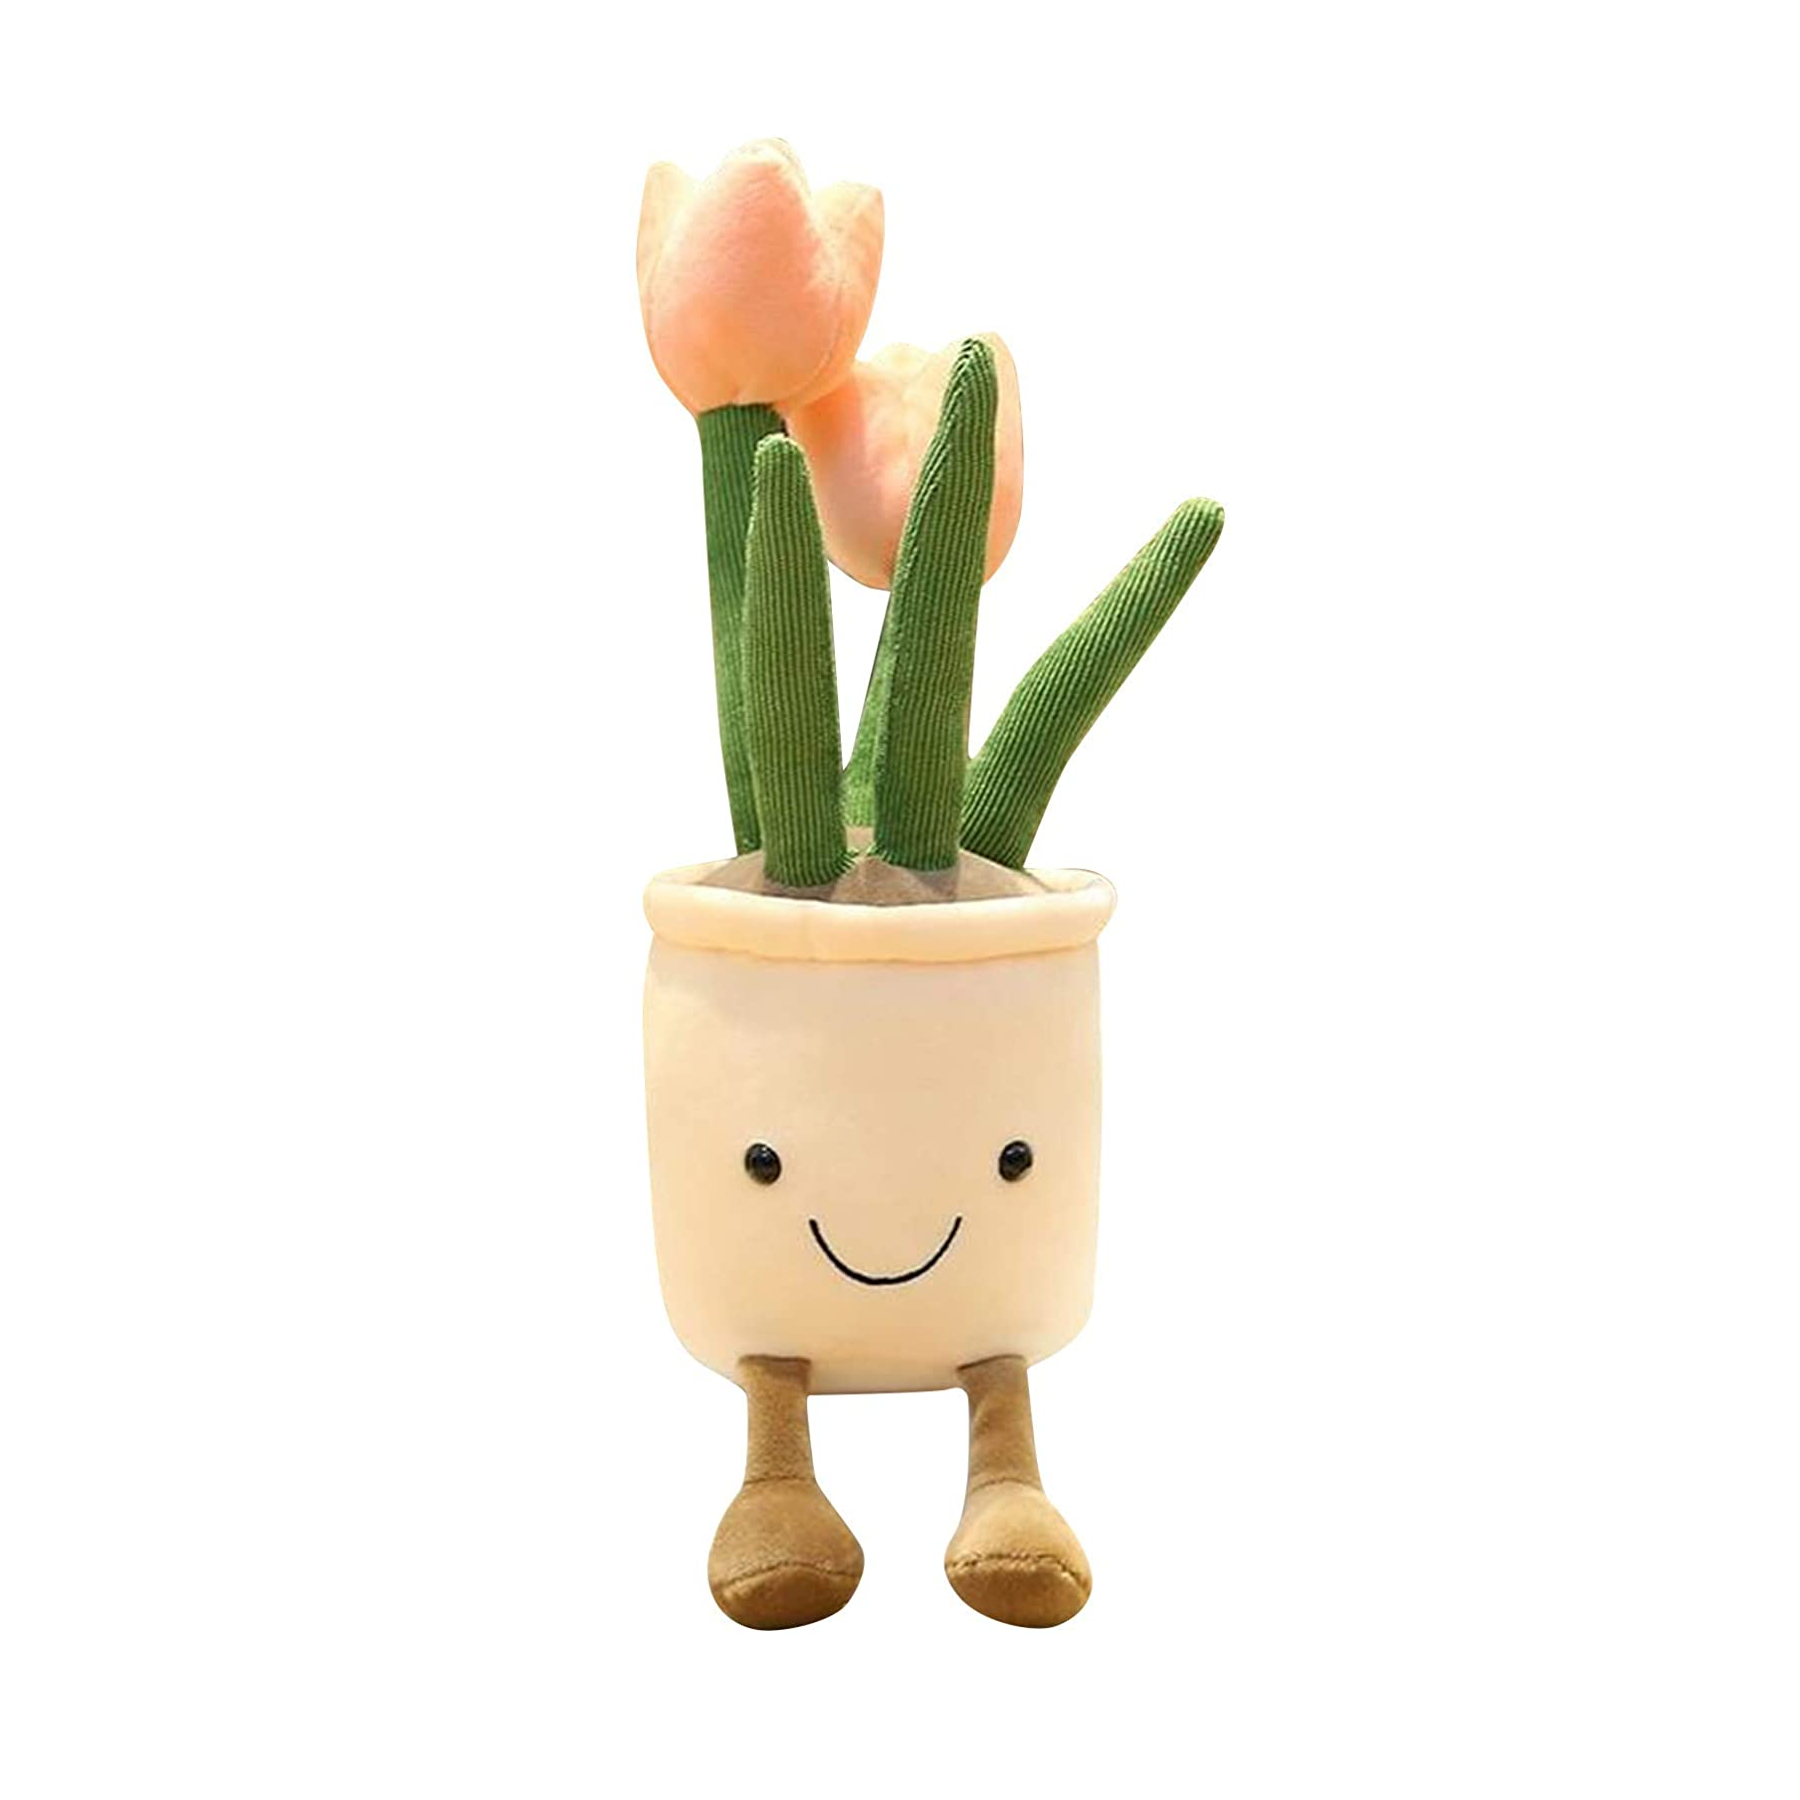 9020store Potted Plants Plush Flower Toy Doll, Cute Tulip Plushies, Stuffed Animal, Adorable Soft Plush Flowers, Gifts Toy for Kids Boys Girls All Ages, 13.7""